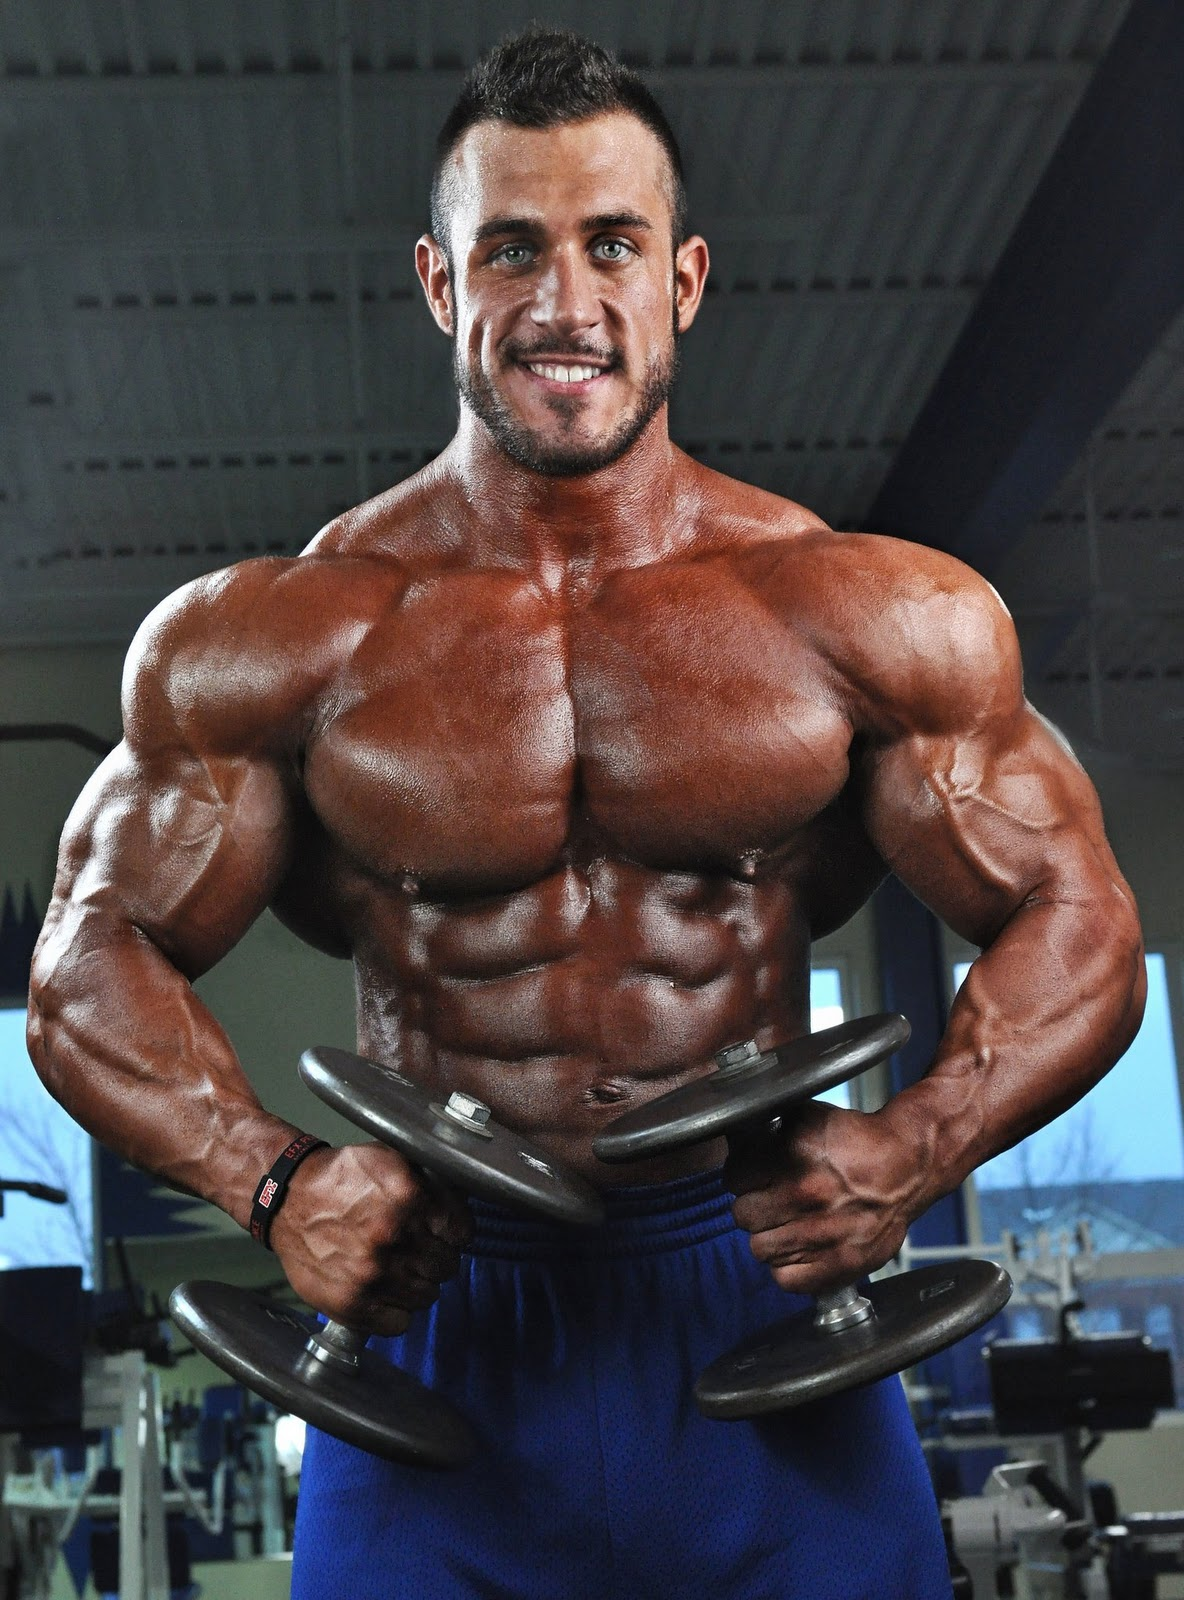 MUSCLE ADDICTS INC: HOT BODYBUILDER ANTOINE VAILLANT: PART 1